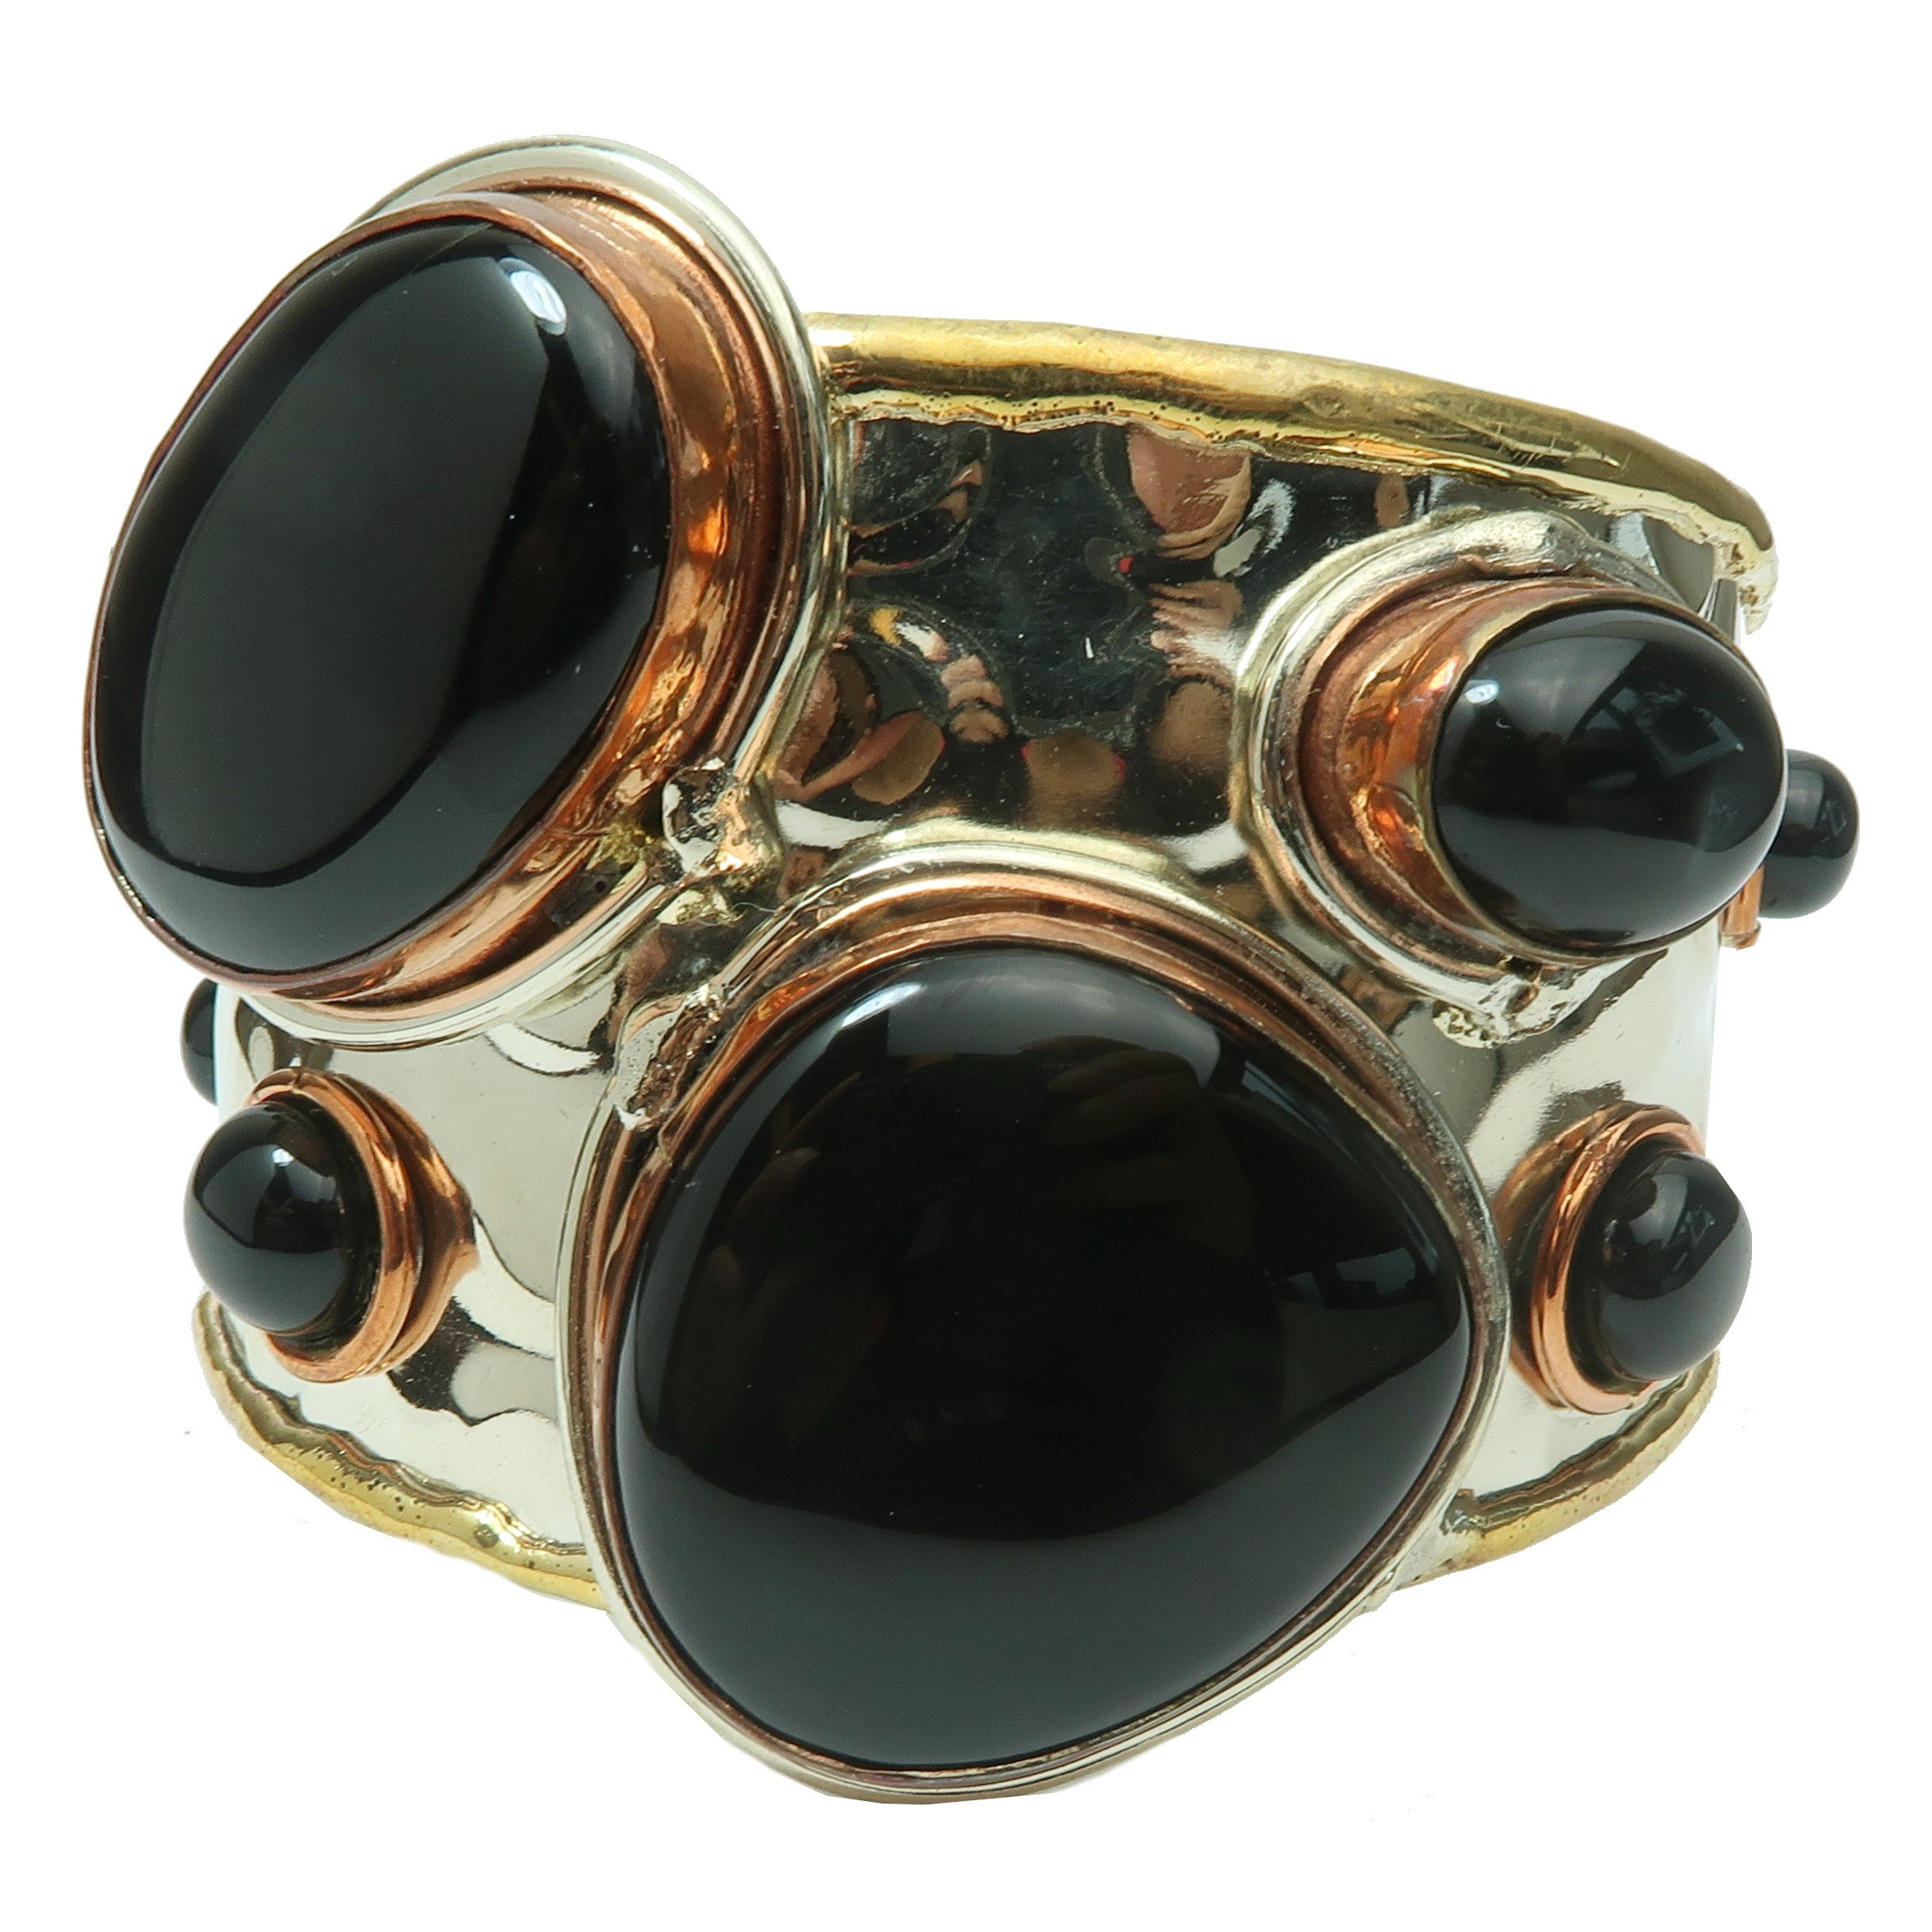 Satin Crystals Onyx Black Bracelet 5.5-7'' Boutique Genuine Gemstone Goddess Cuff Copper Brass Silver Metal Statement B01